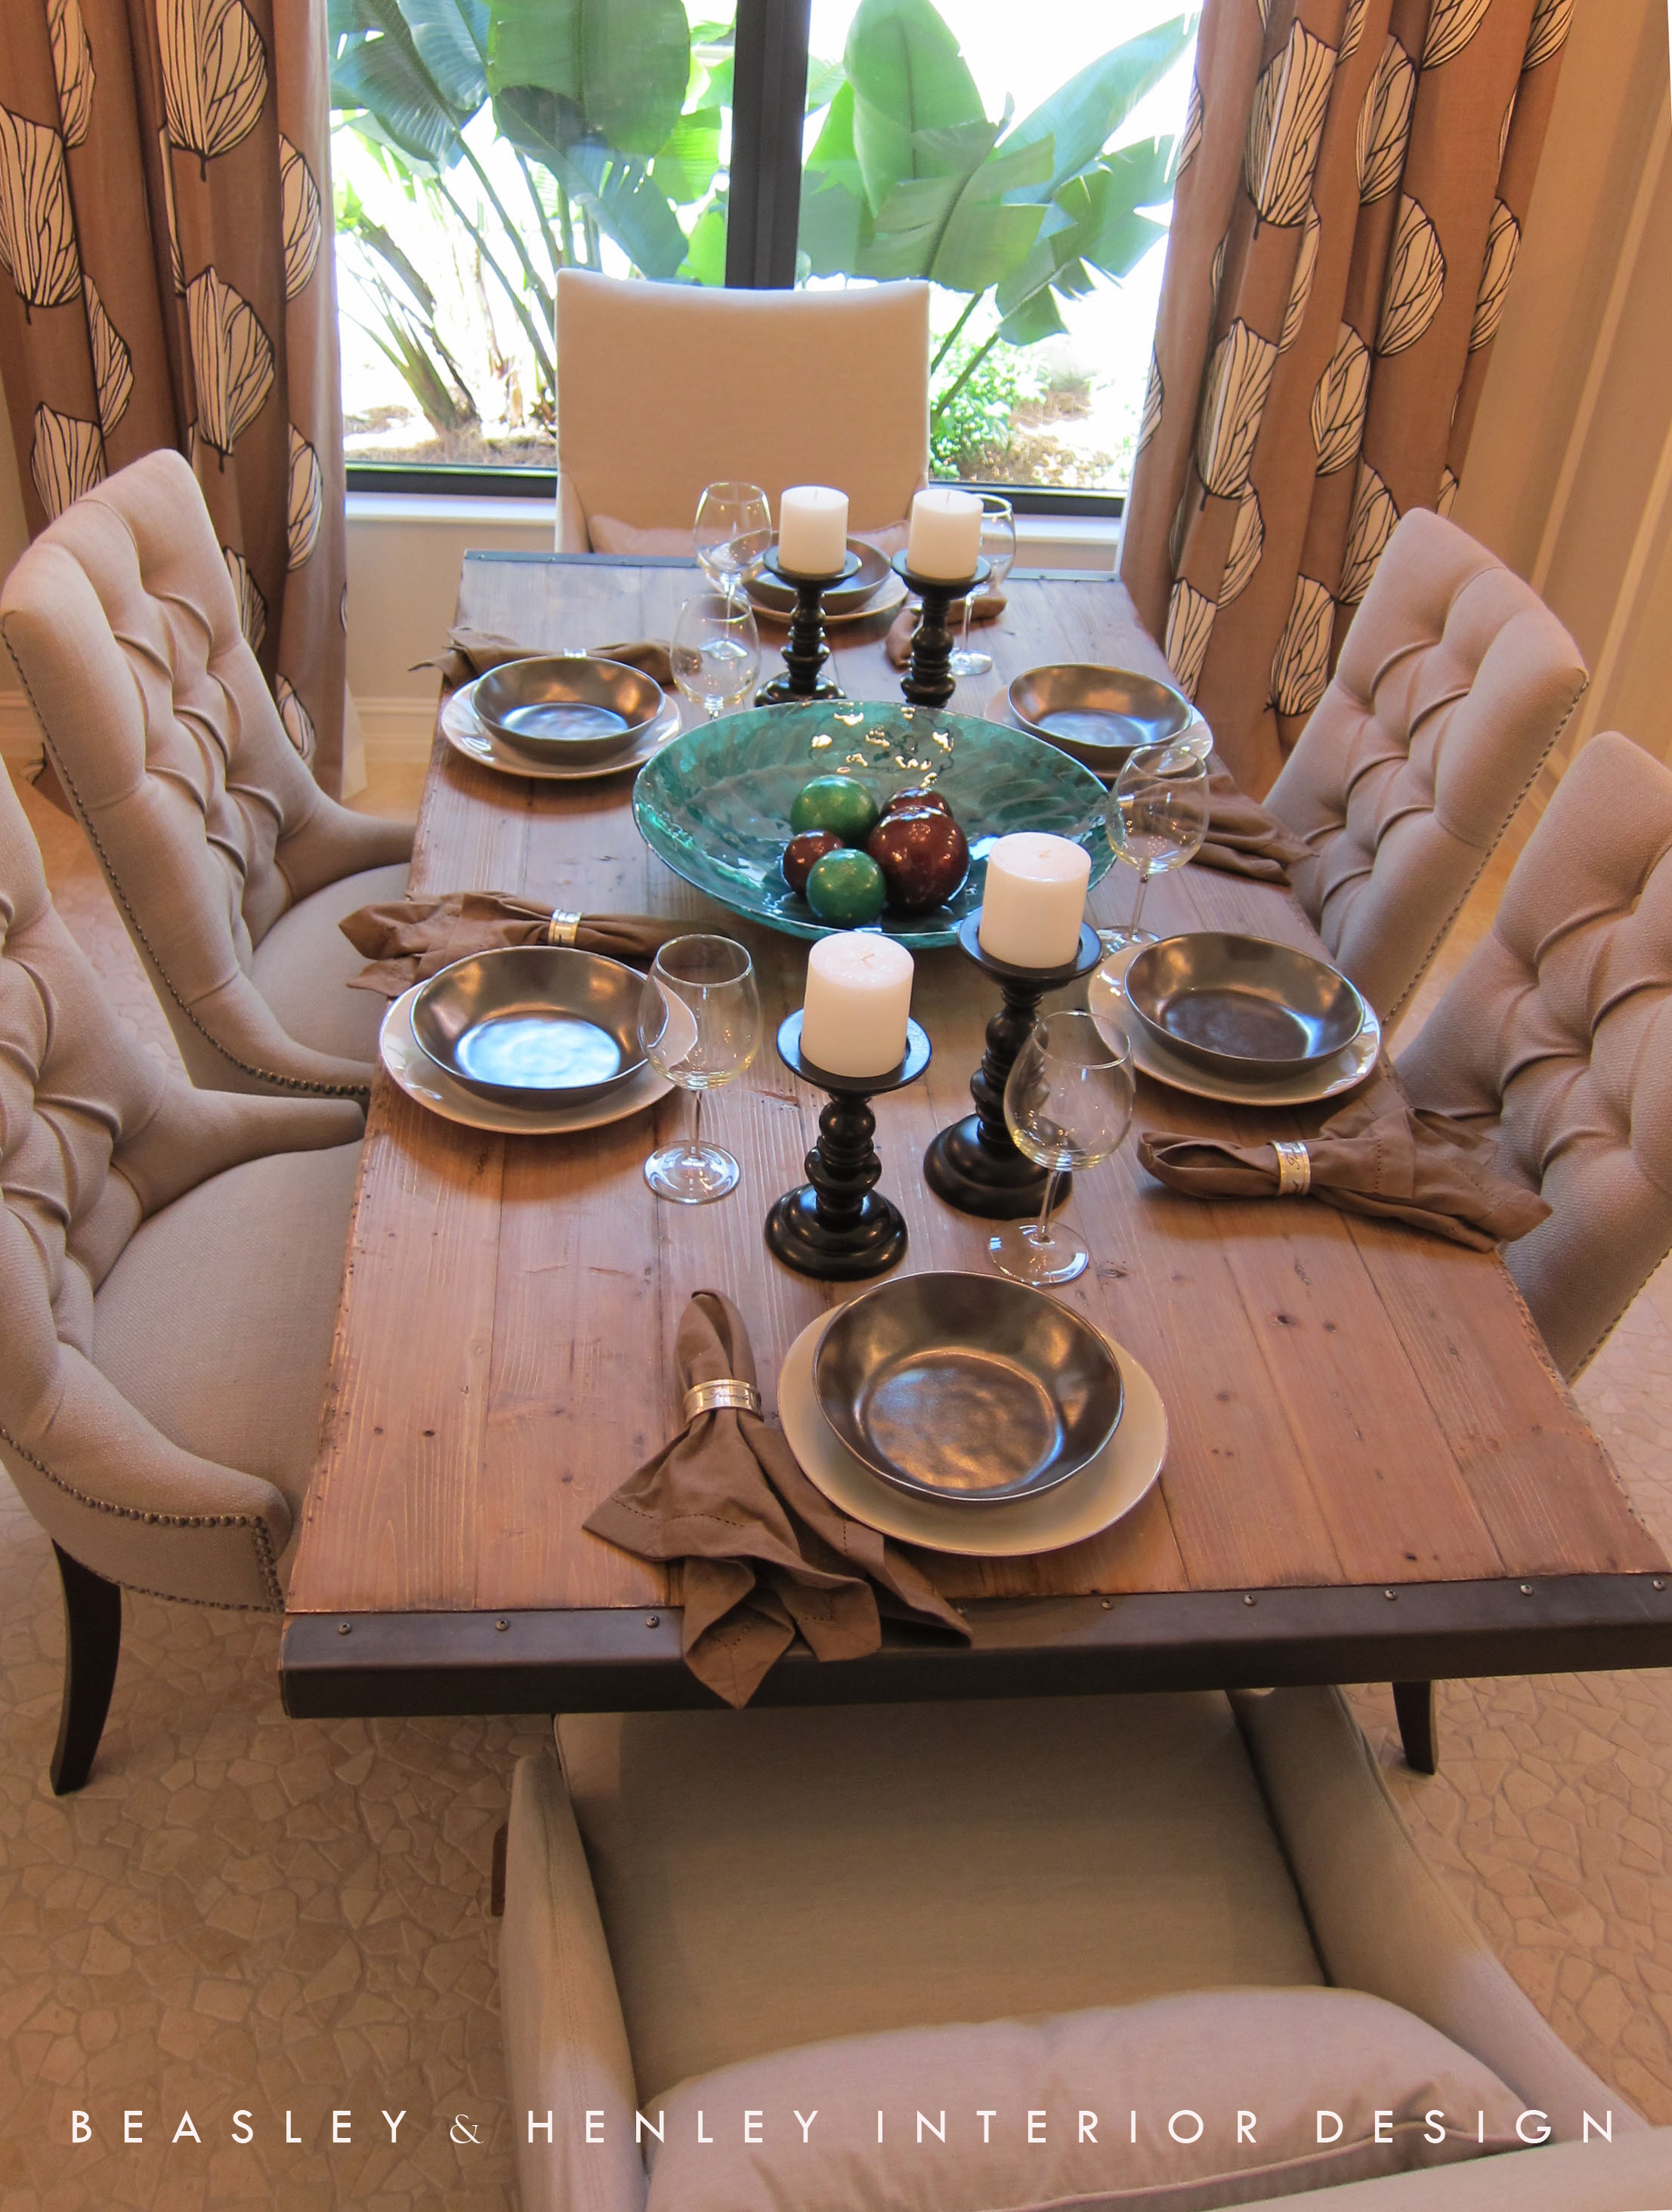 Vintage Style Dining Table By Beasley Henley Interior Design In Naples